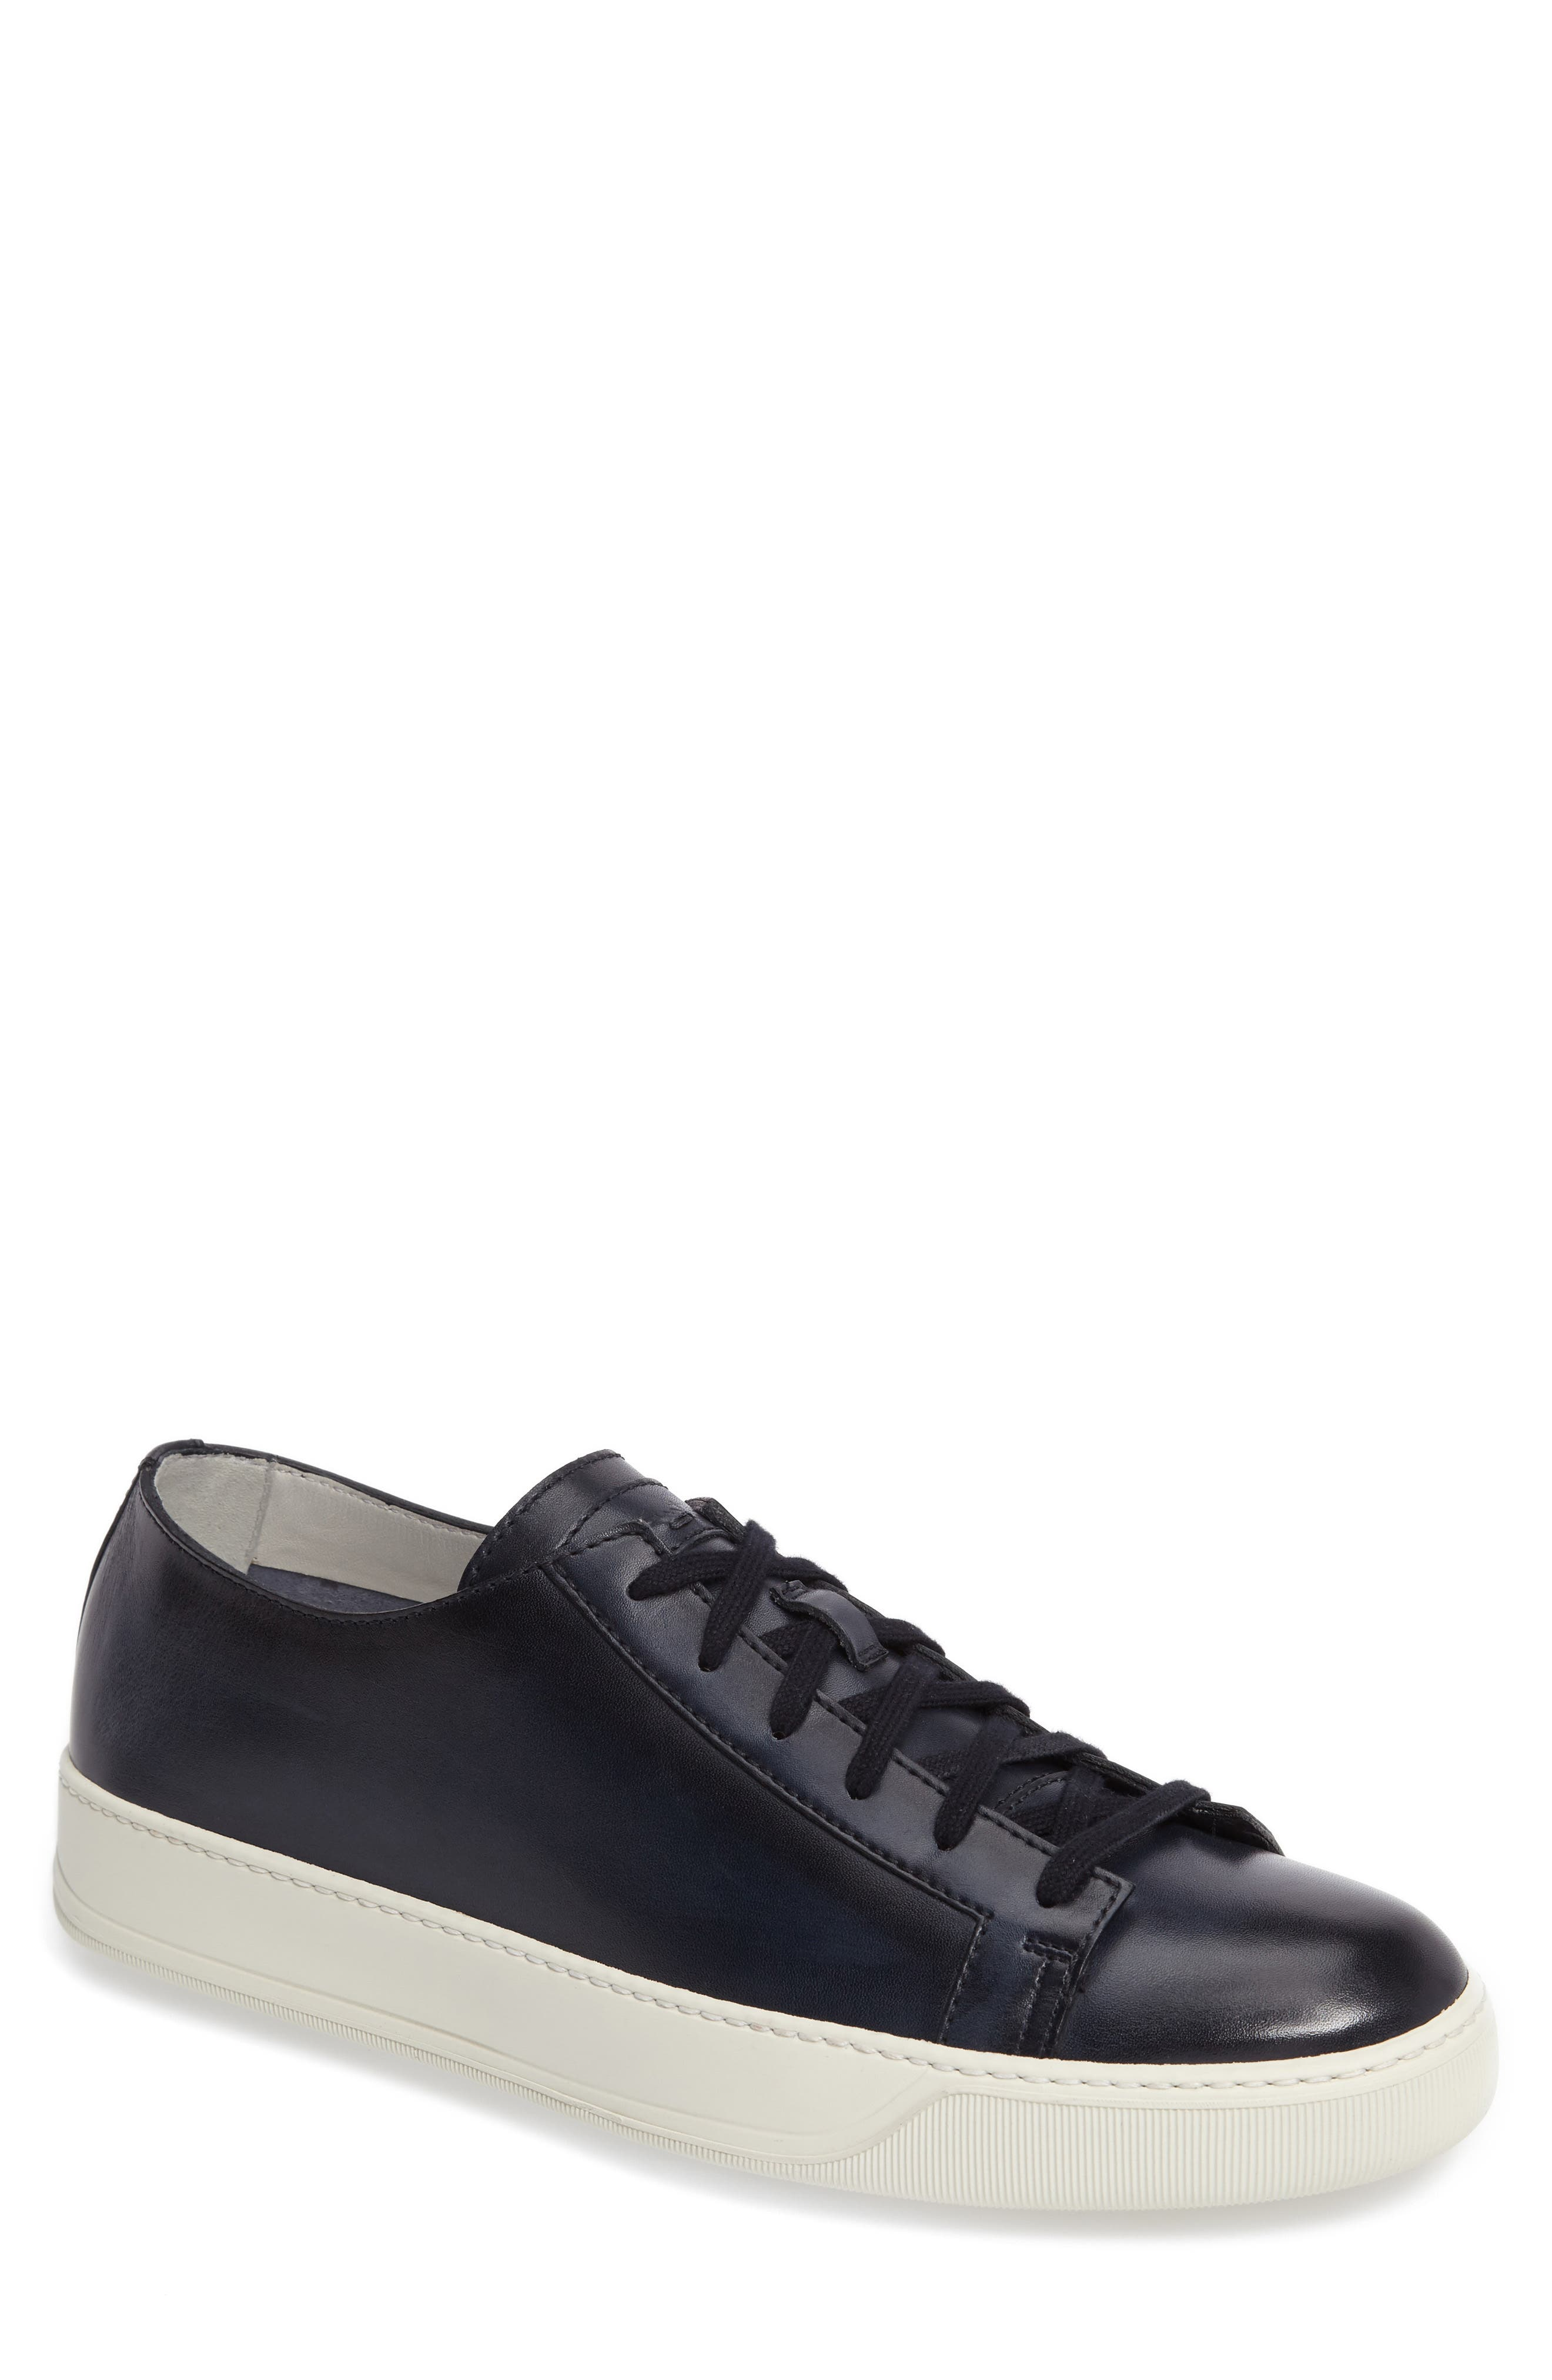 Santoni Cleanic Sneaker (Men)